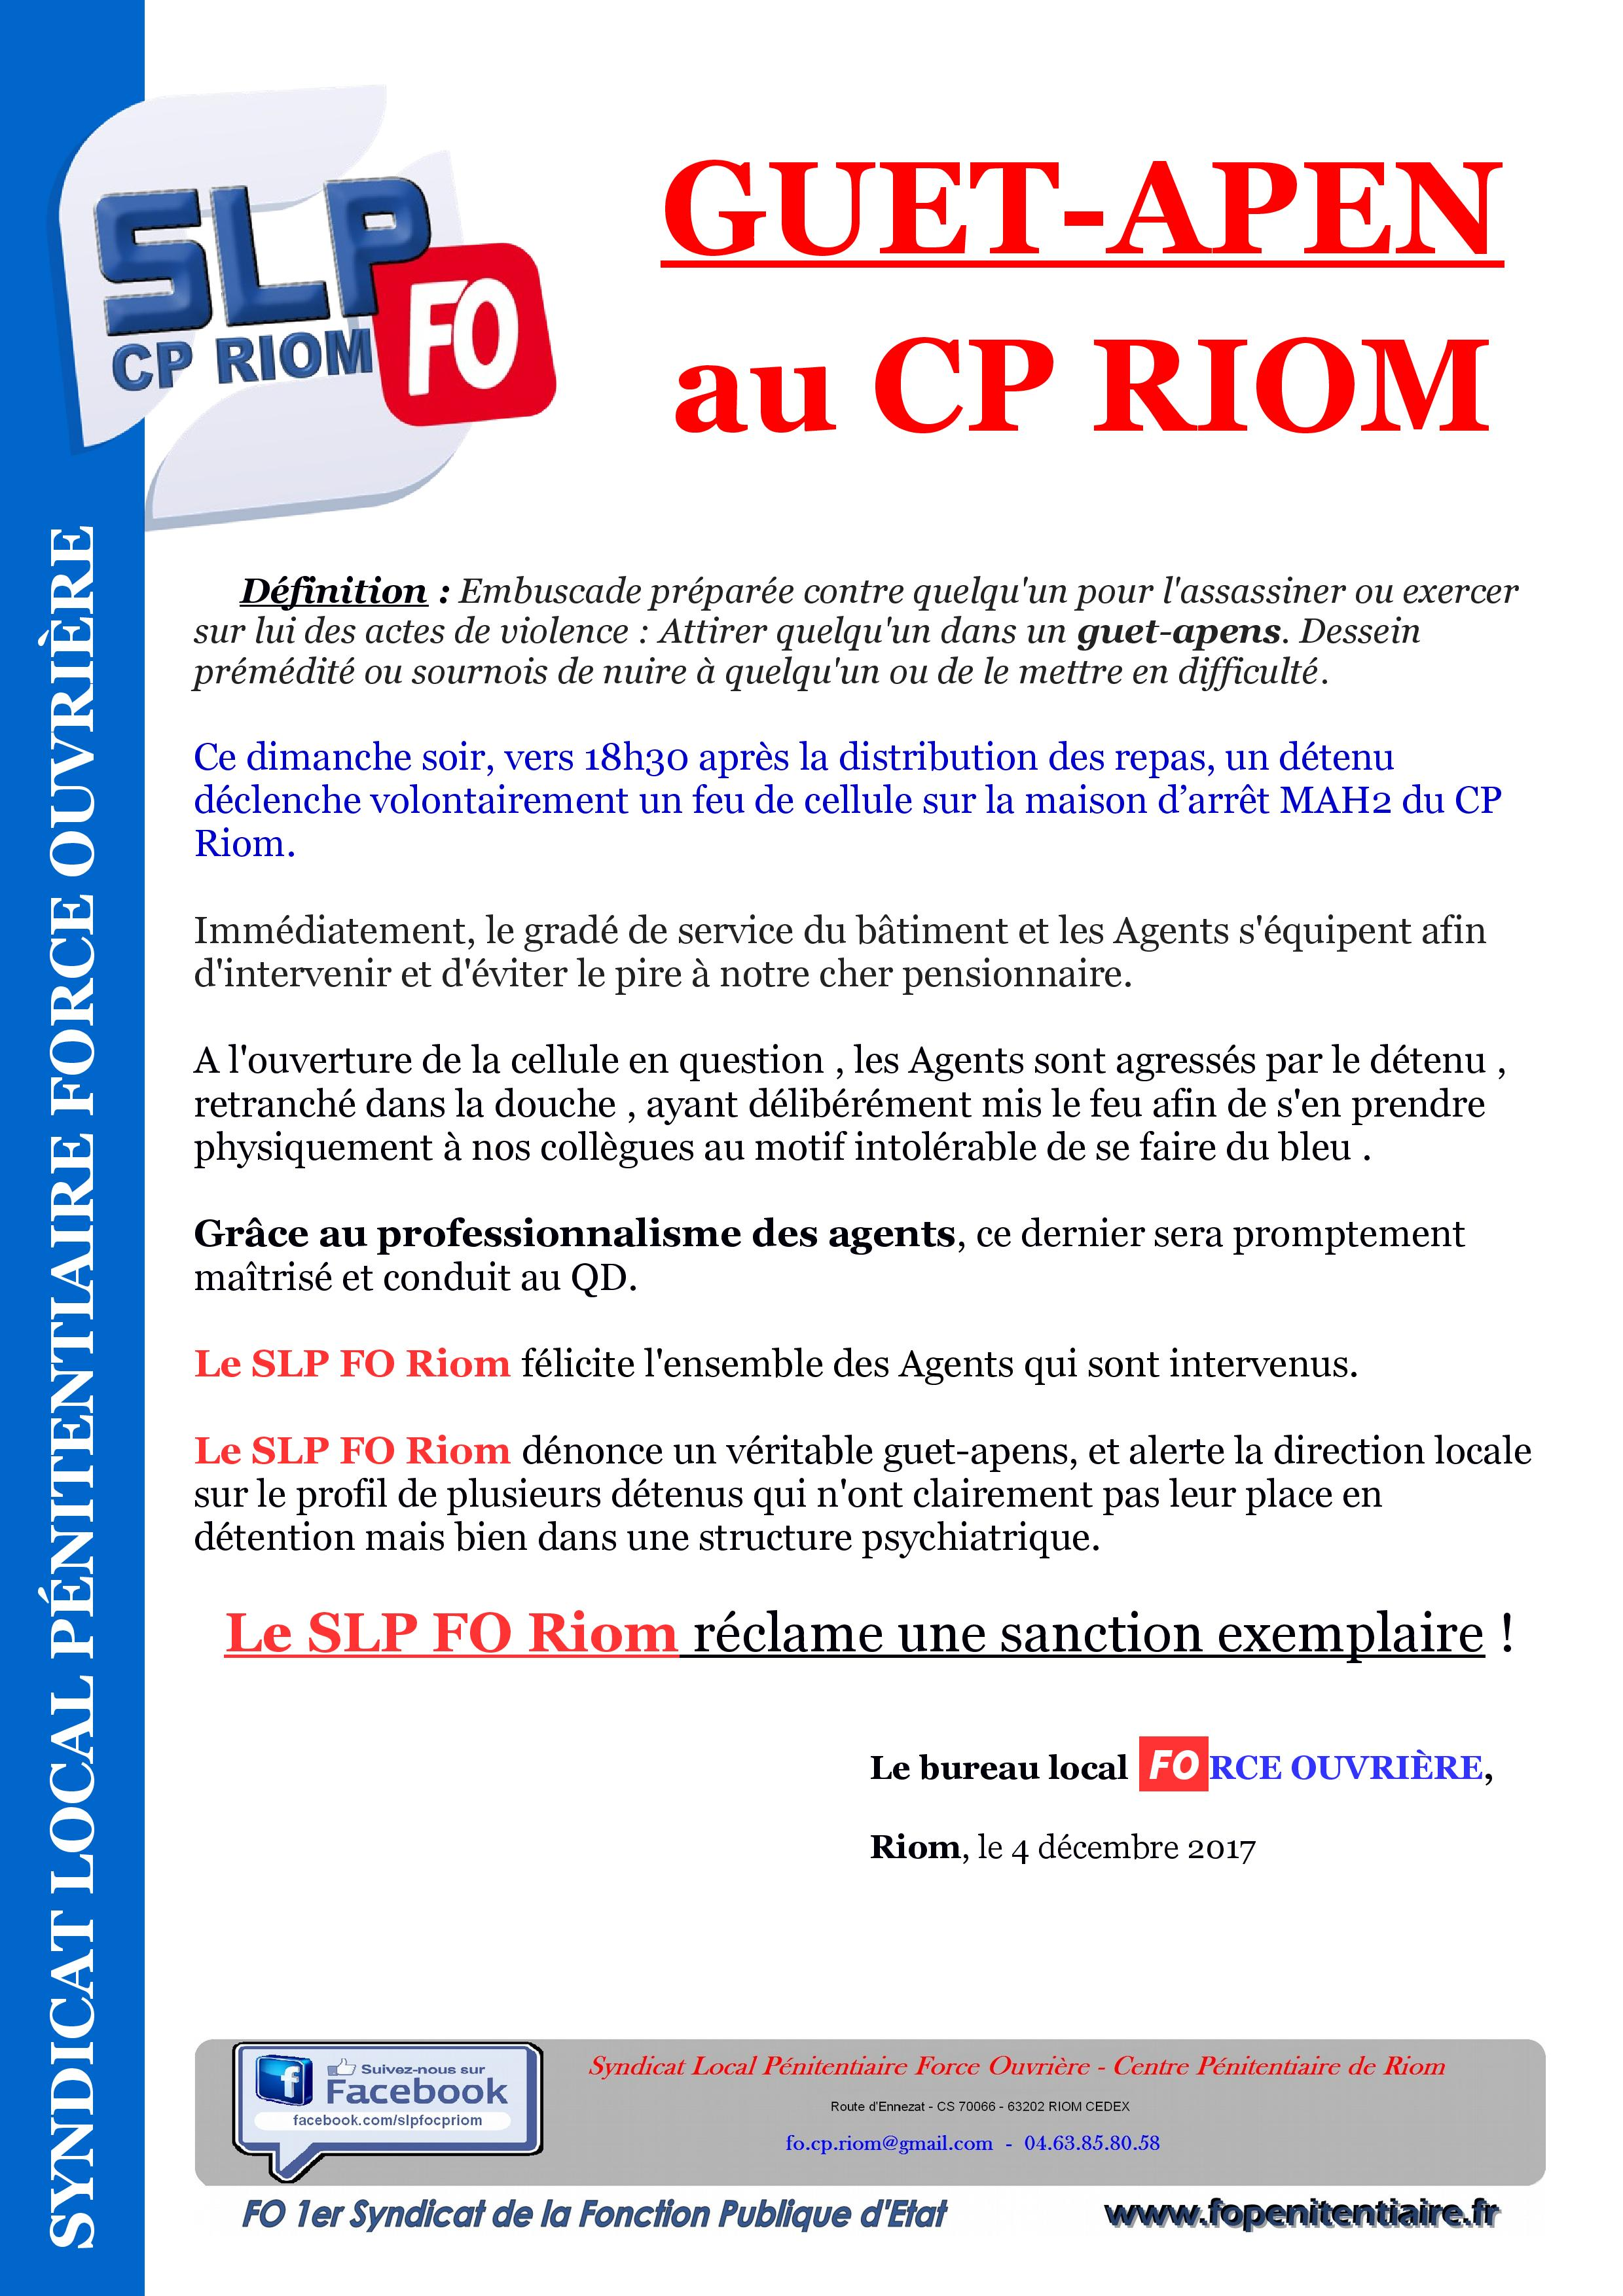 guet-apens CPRiom-page-001